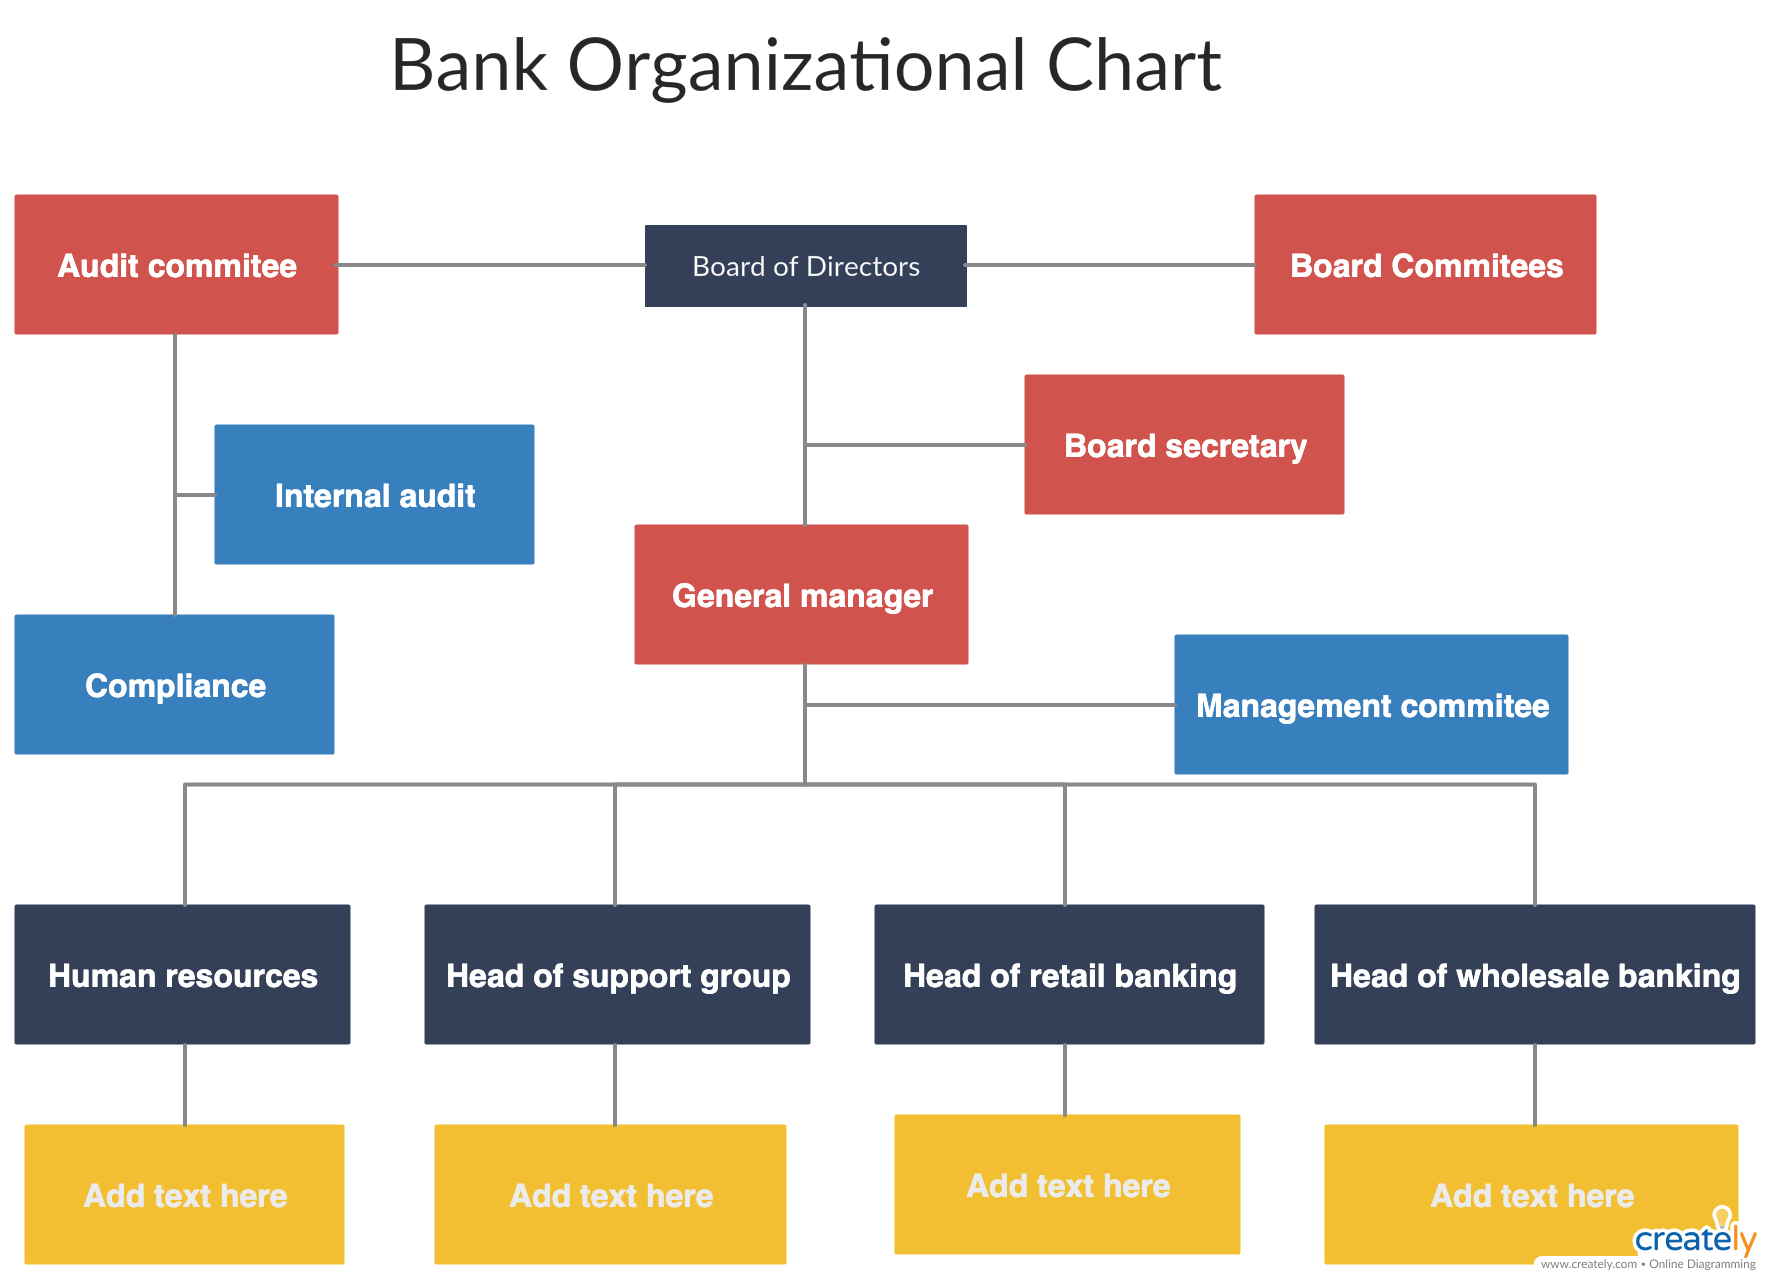 Org Chart Best Practices For Effective Organizational Charts Organizational Chart Org Chart Organizational Chart Design